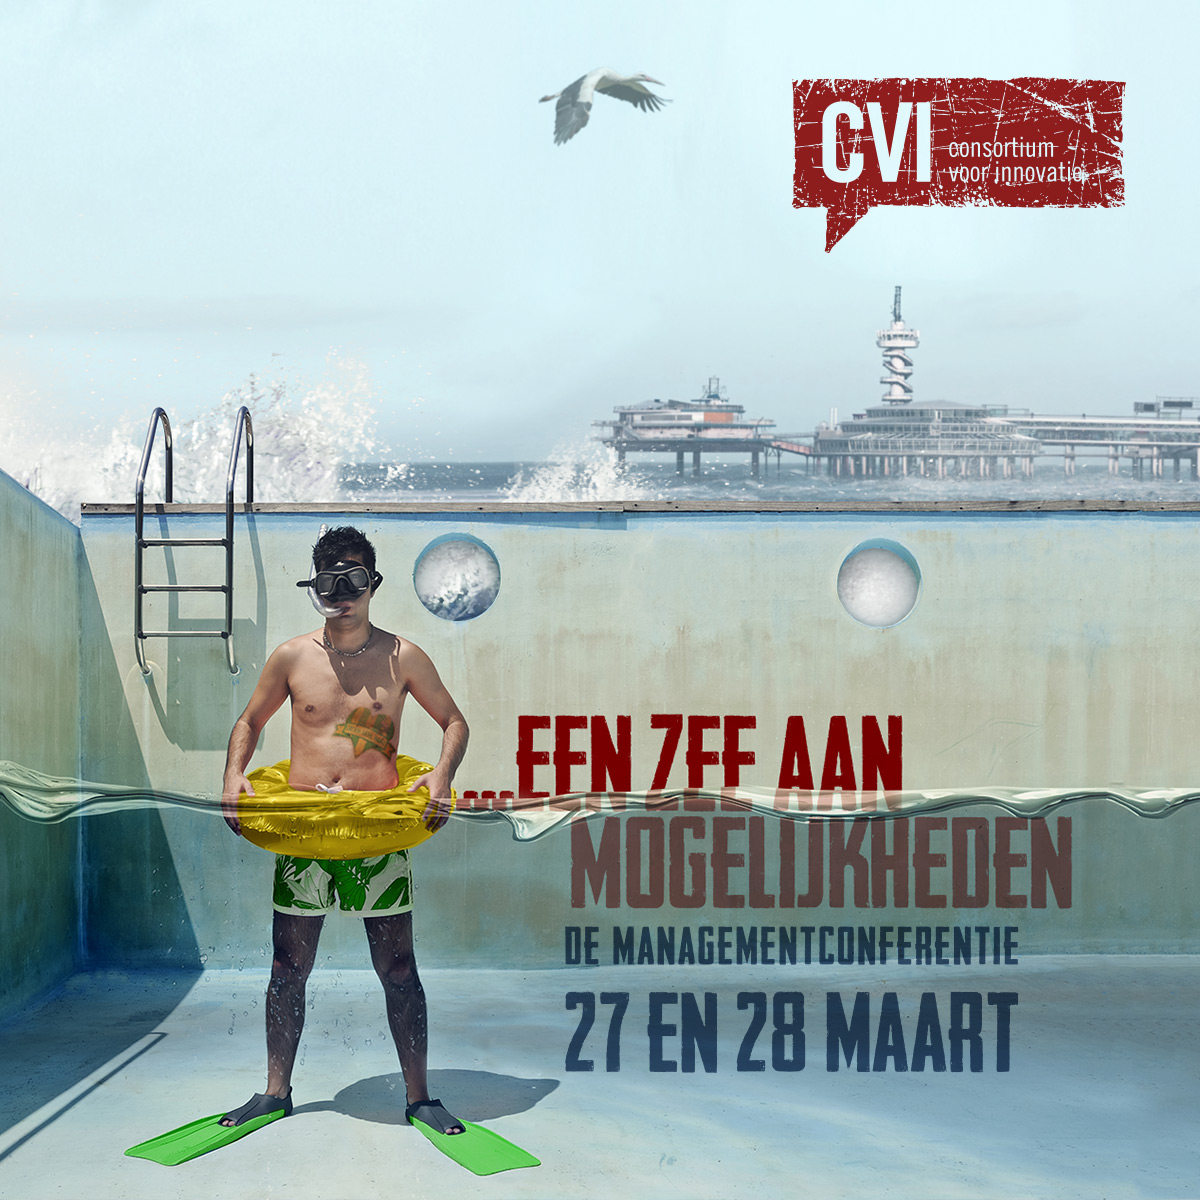 Dé CvI Conferentie 2019